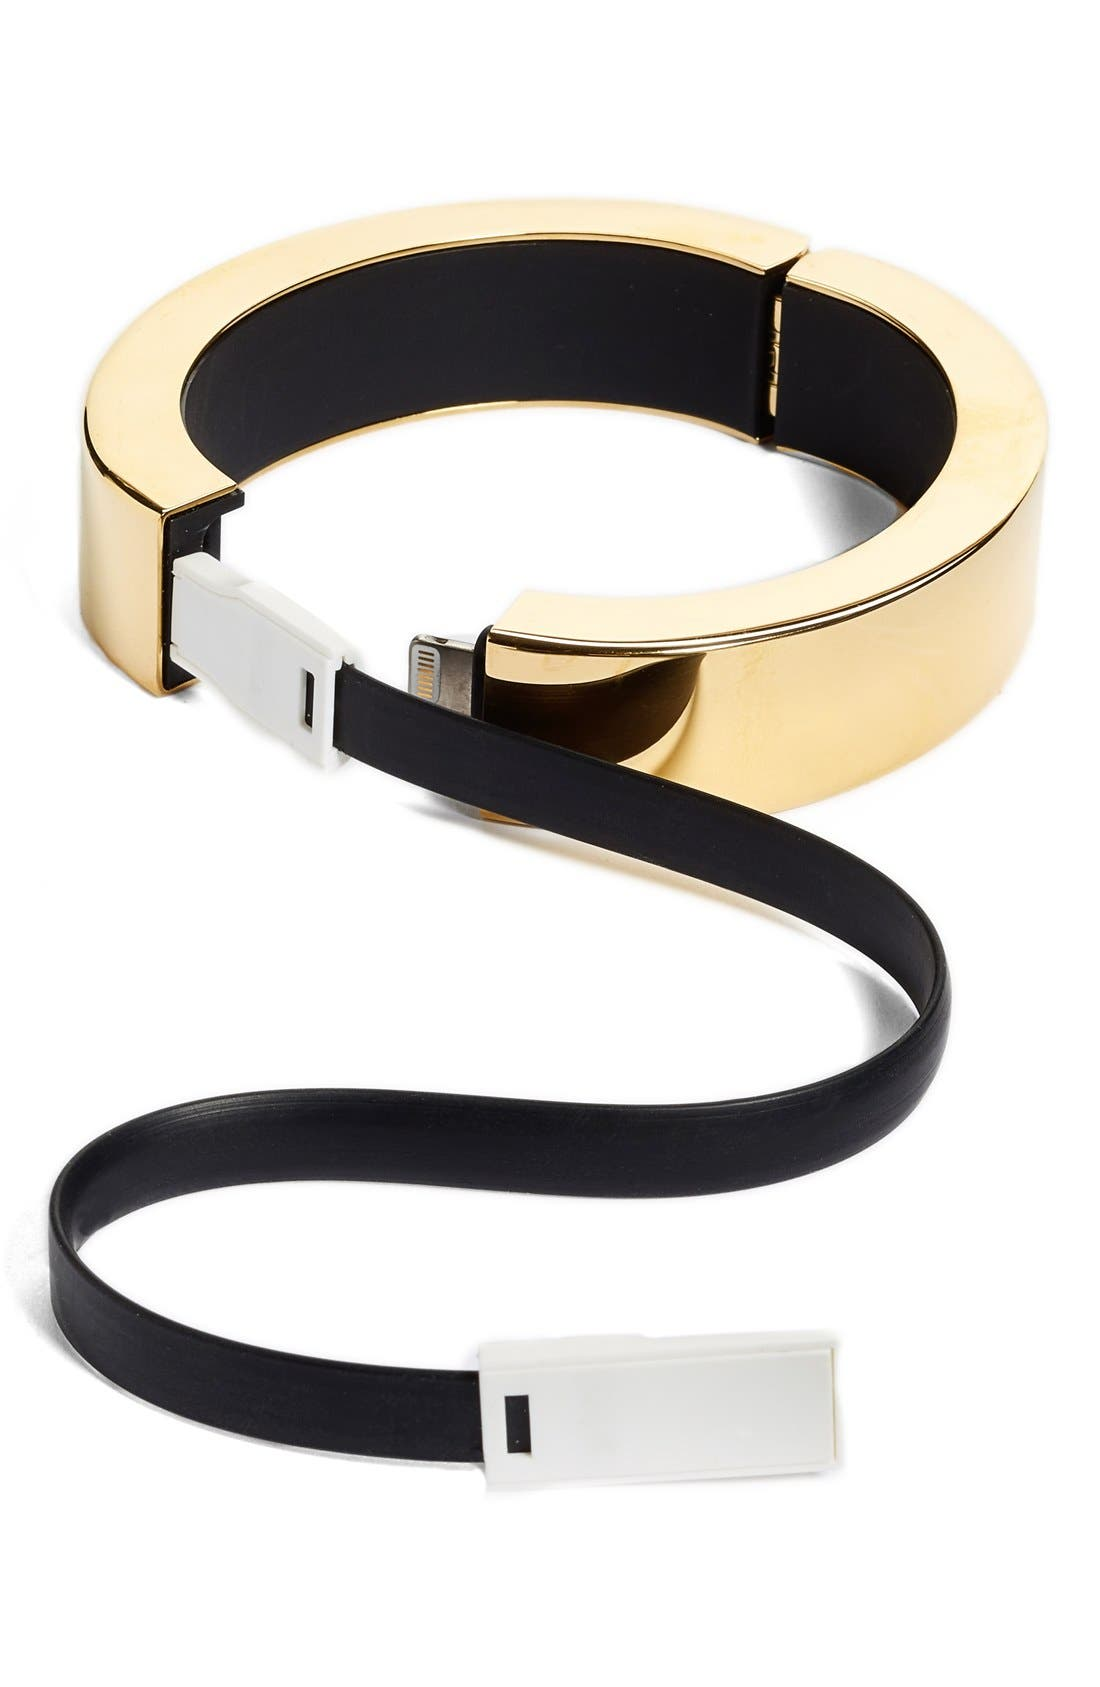 Bracelet with iPhone Charger,                             Alternate thumbnail 2, color,                             710